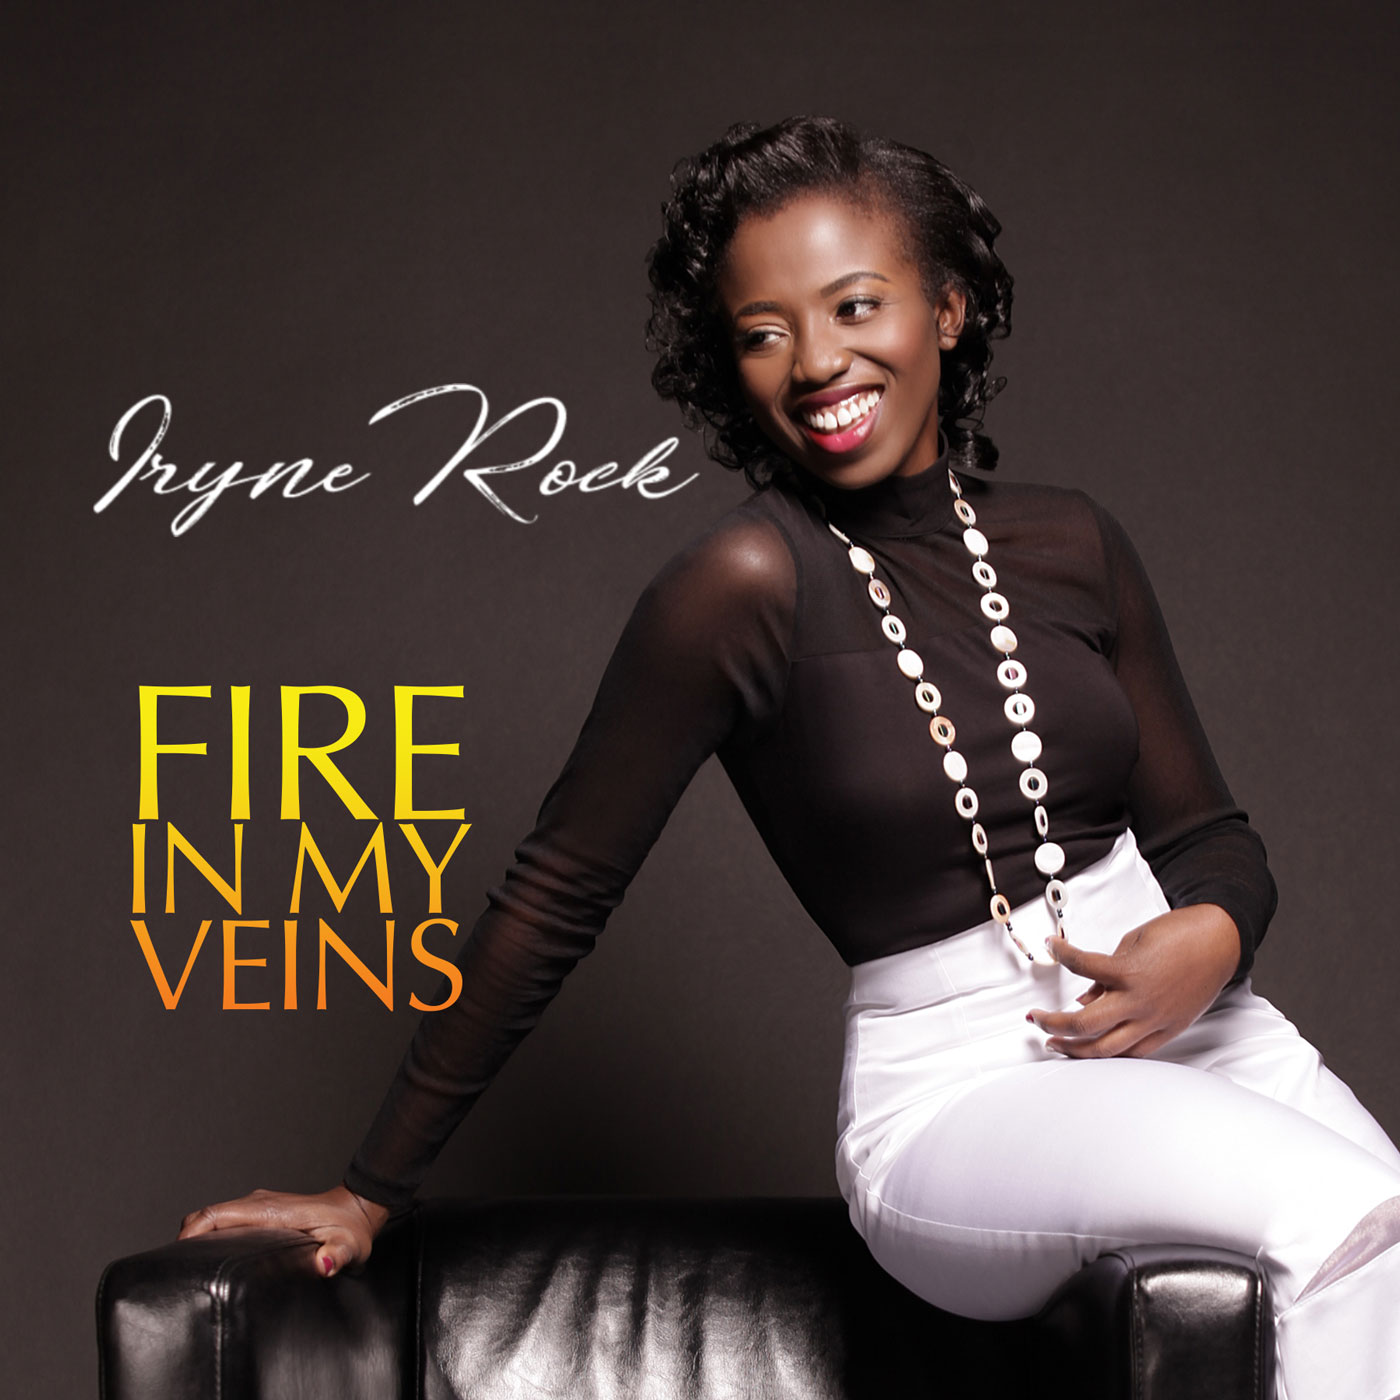 NEW ARTIST IRYNE ROCK RELEASES CHRISTIAN AC/CHR SINGLE